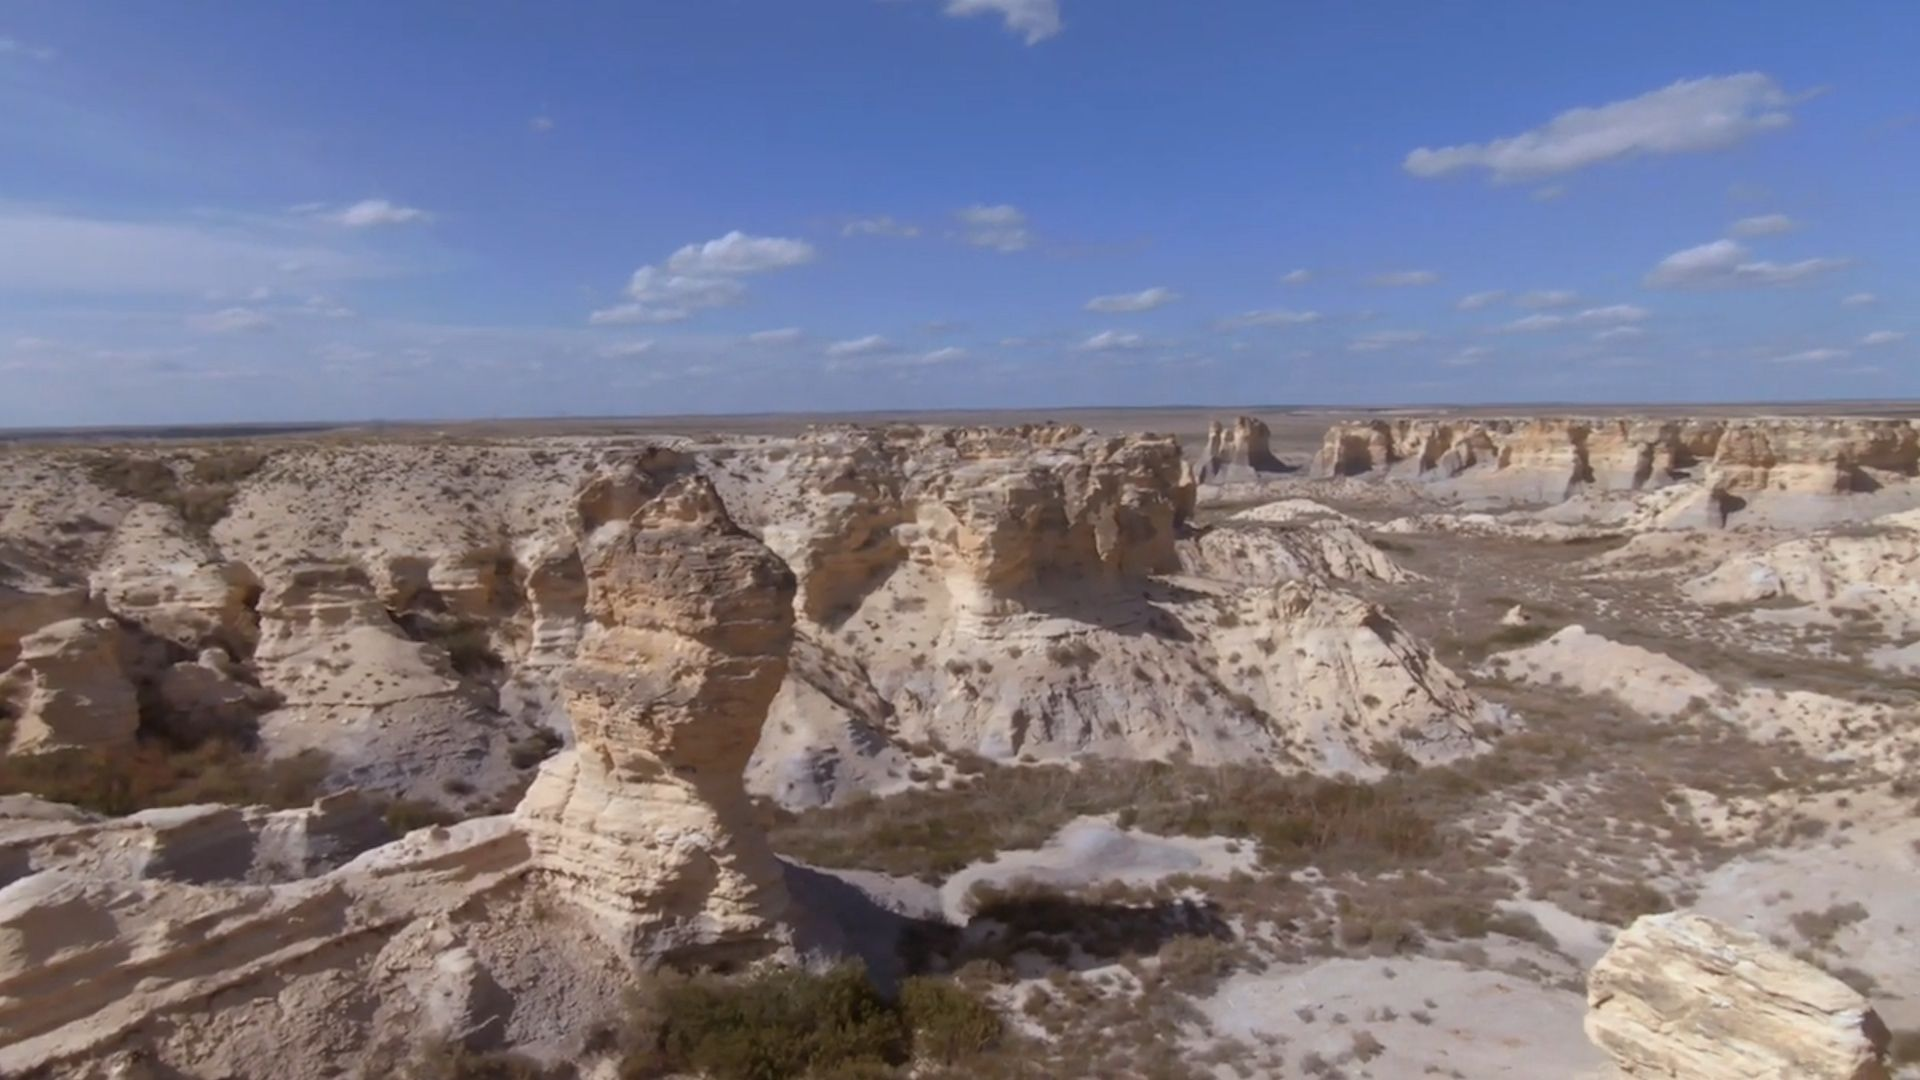 Explore Outdoors: Little Jerusalem Badlands State Park rivals national parks with scenery, wildlife